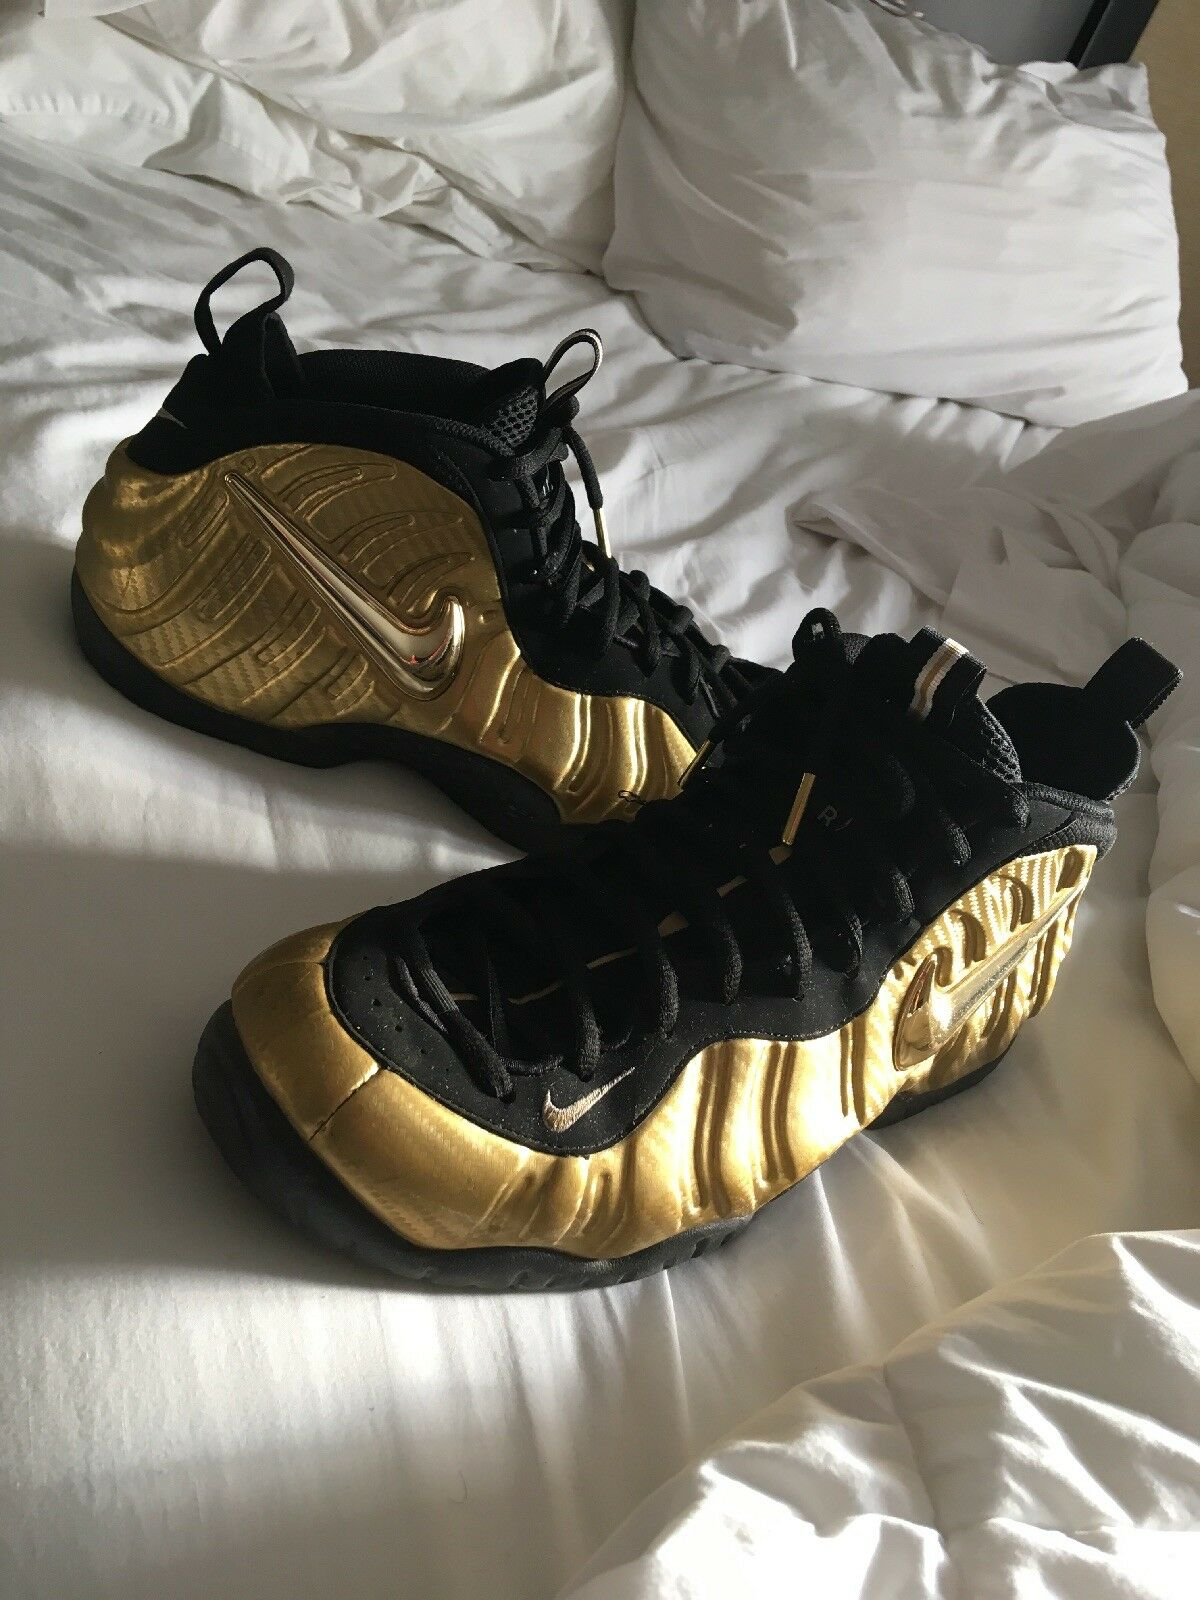 PADS Nike Foamposite Pro Metallic gold Size 12, Og All